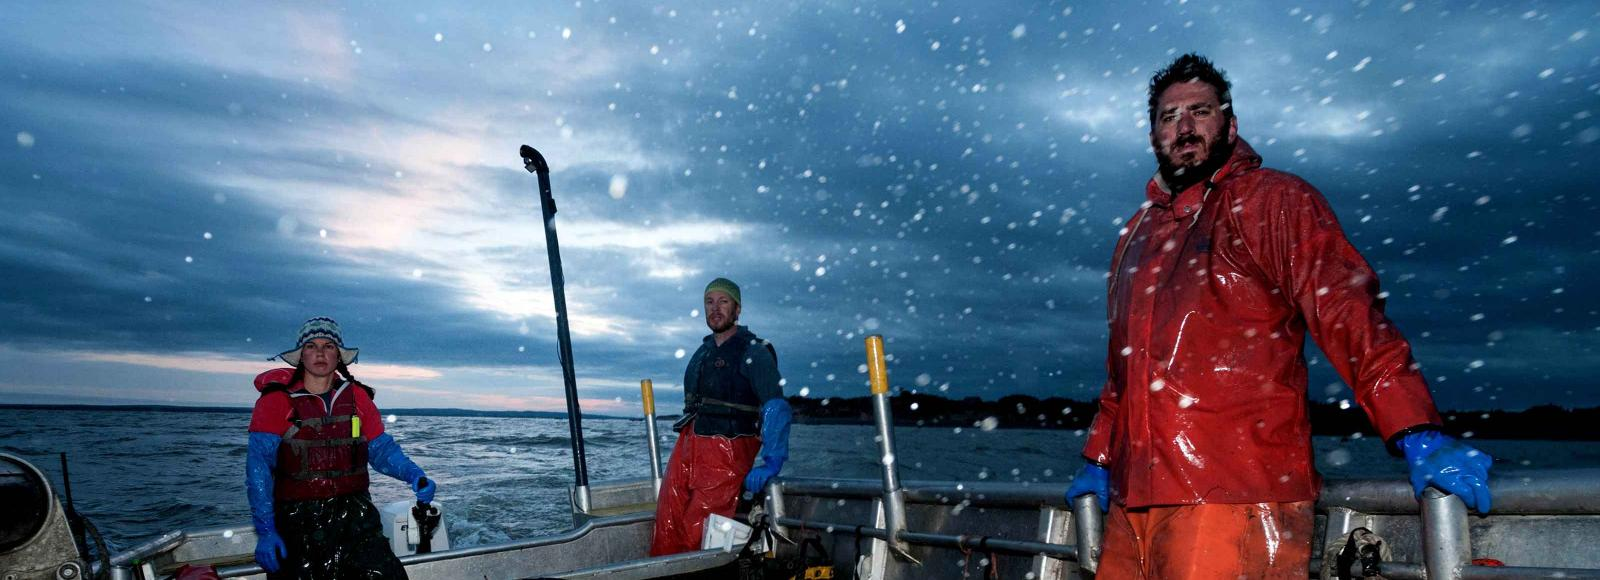 Two men and a woman on a small commercial fishing boat, out on the water under dark skies with flurries of snow.